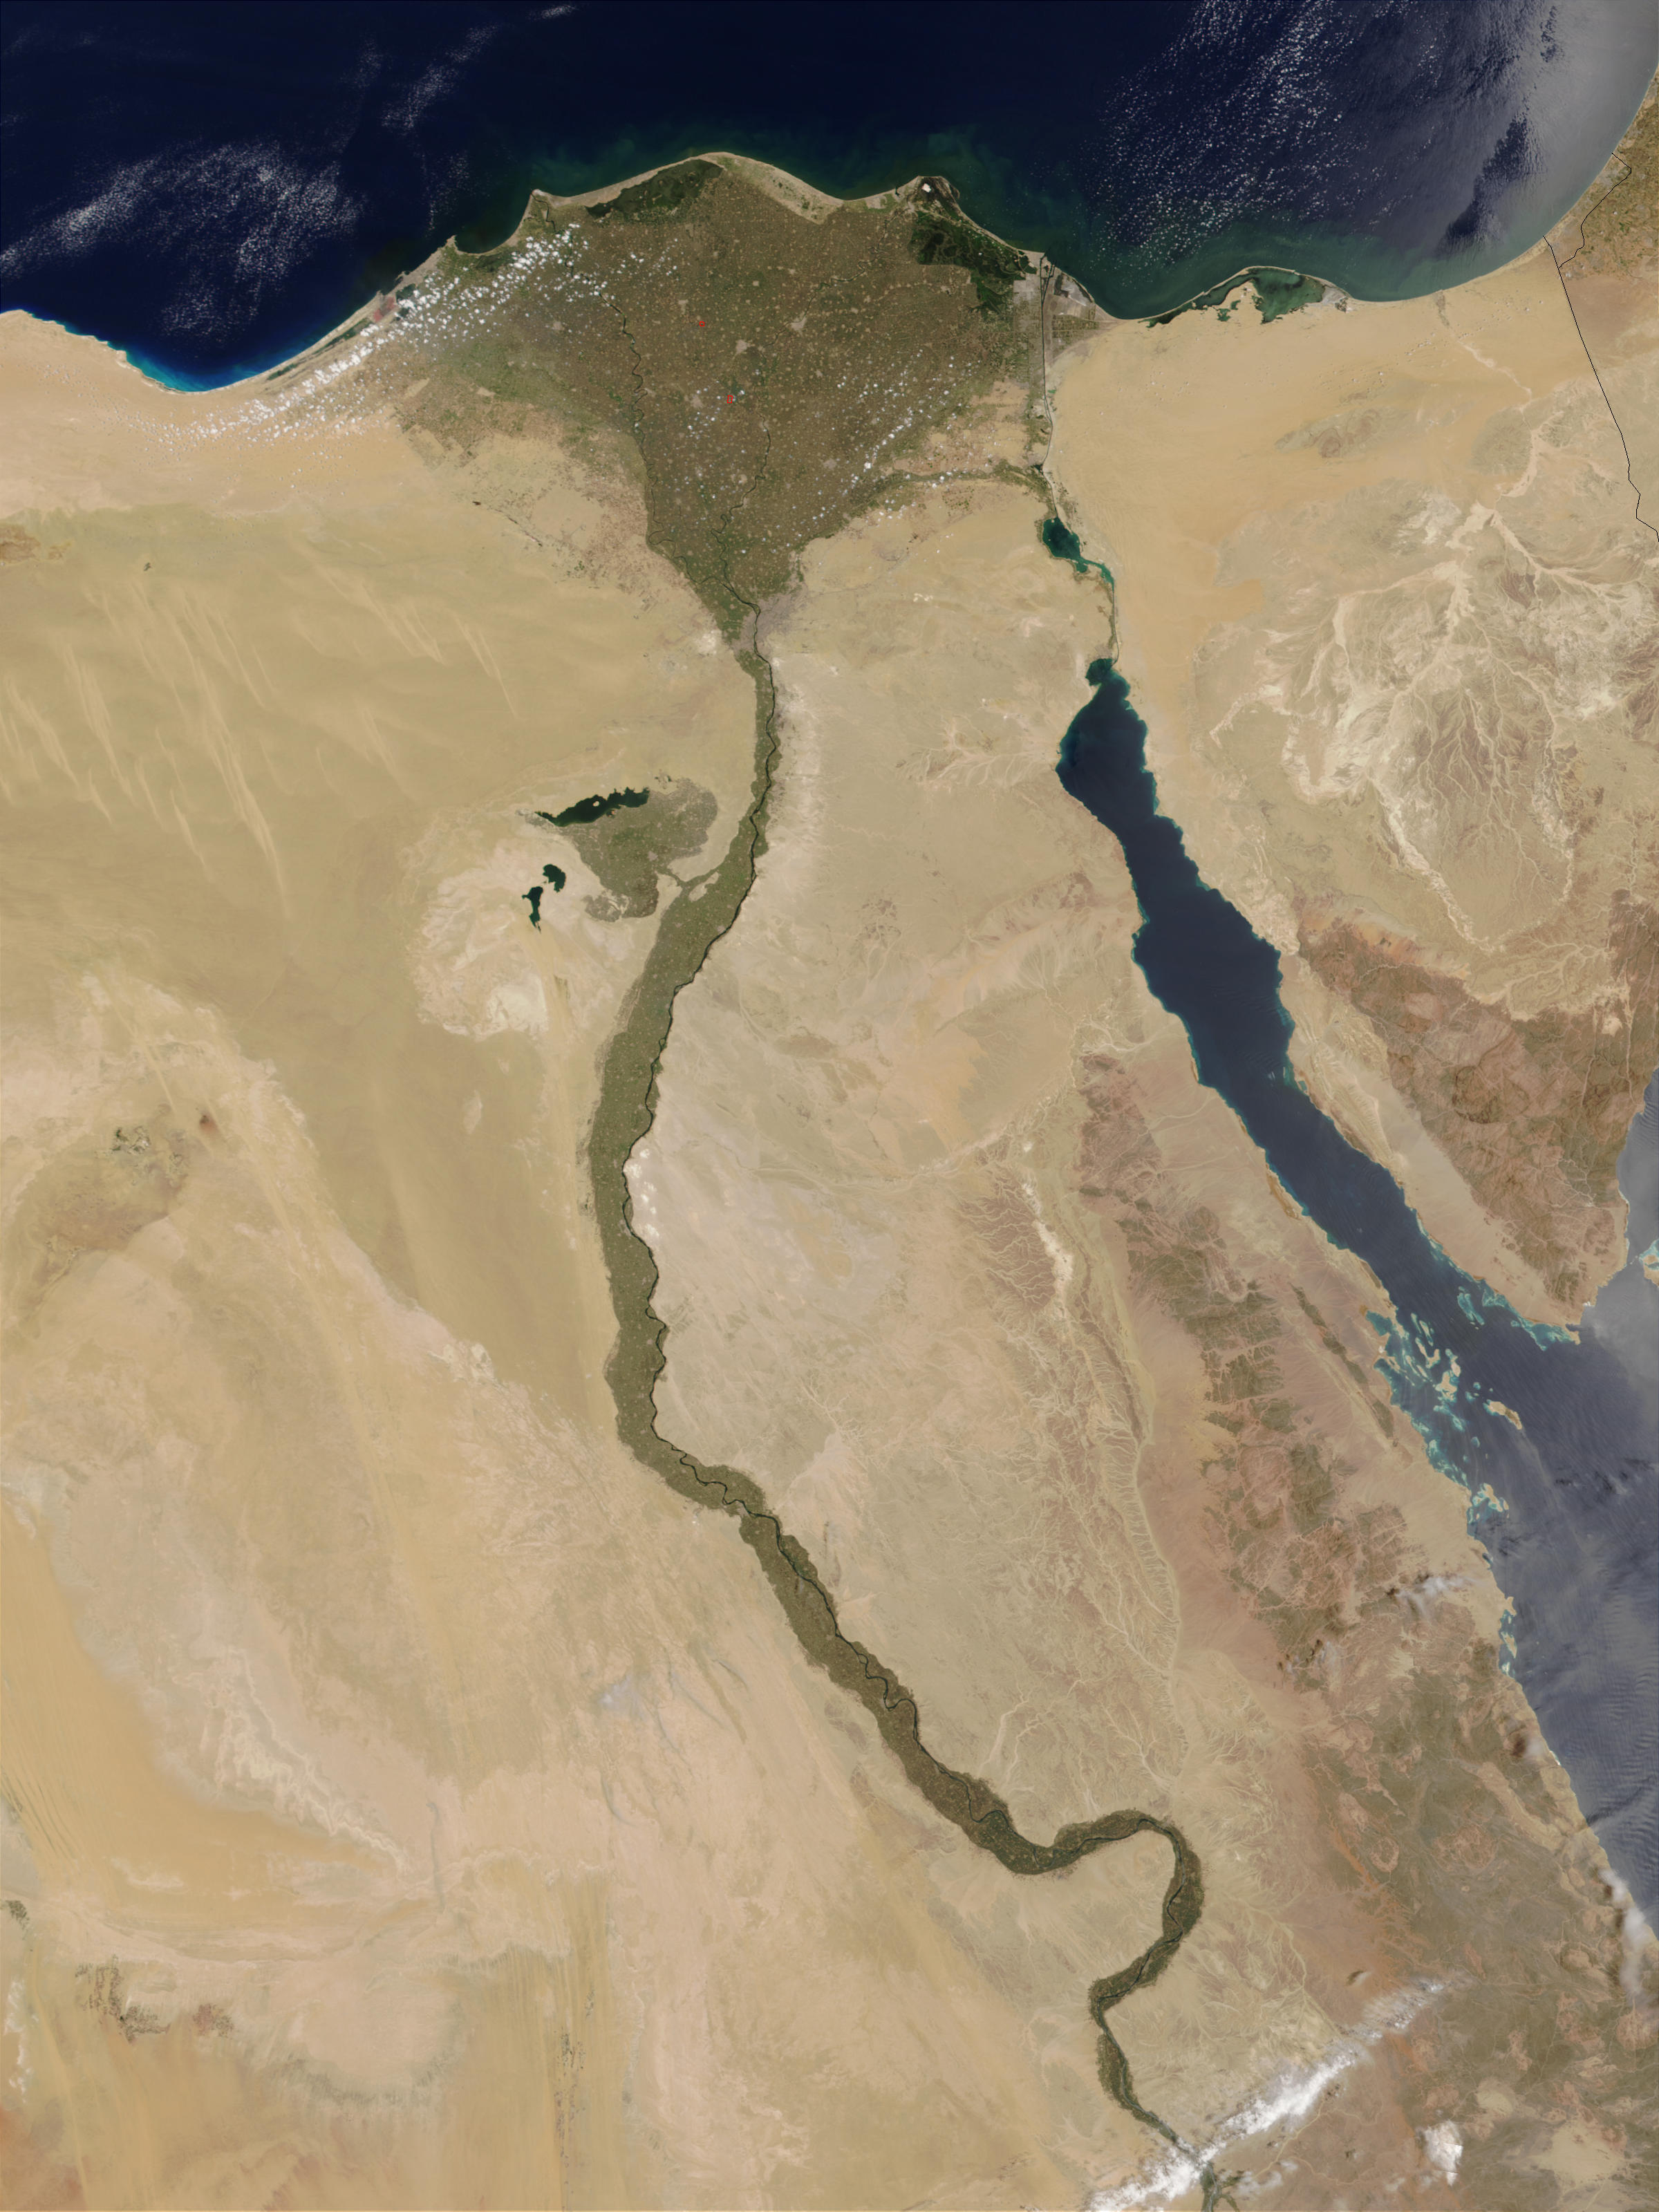 nile river on map with View on Conflict On The Nile moreover File Reeds on the riverbank Tsna likewise Maps in addition Alt Greater Egyptian Empire 636981793 furthermore 1.